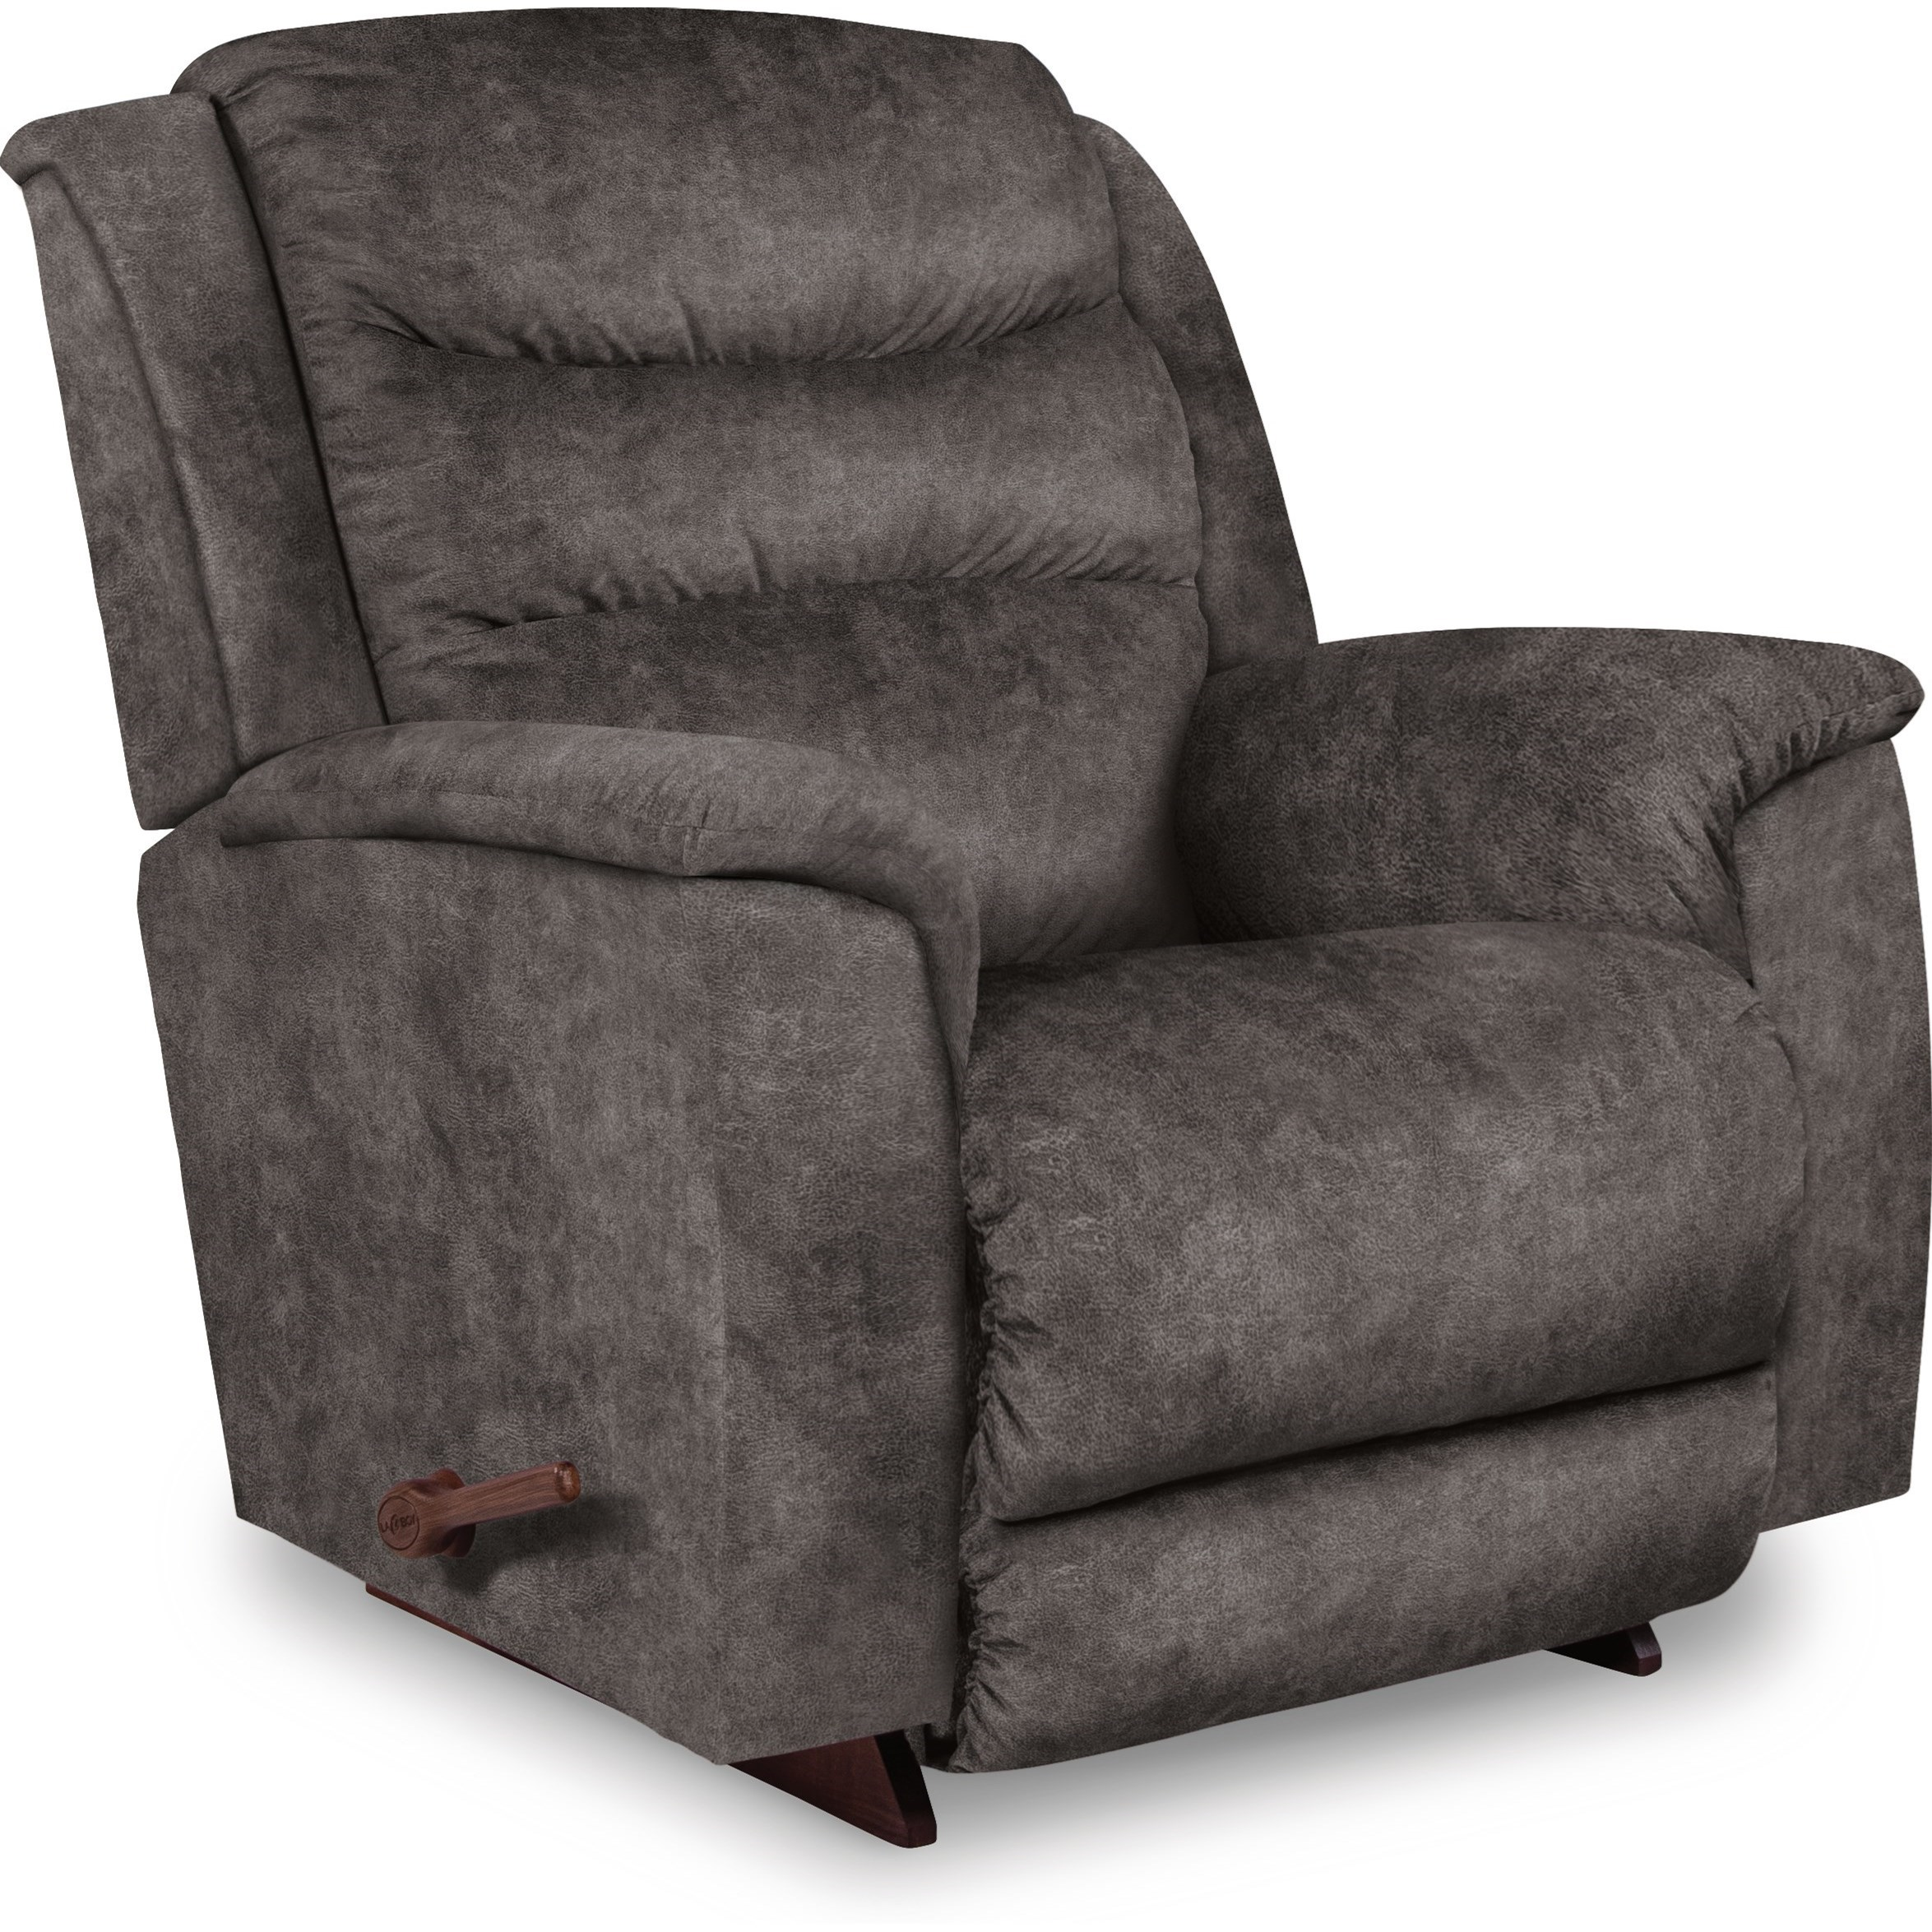 Redwood Power Rocking Recliner by La-Z-Boy at Godby Home Furnishings